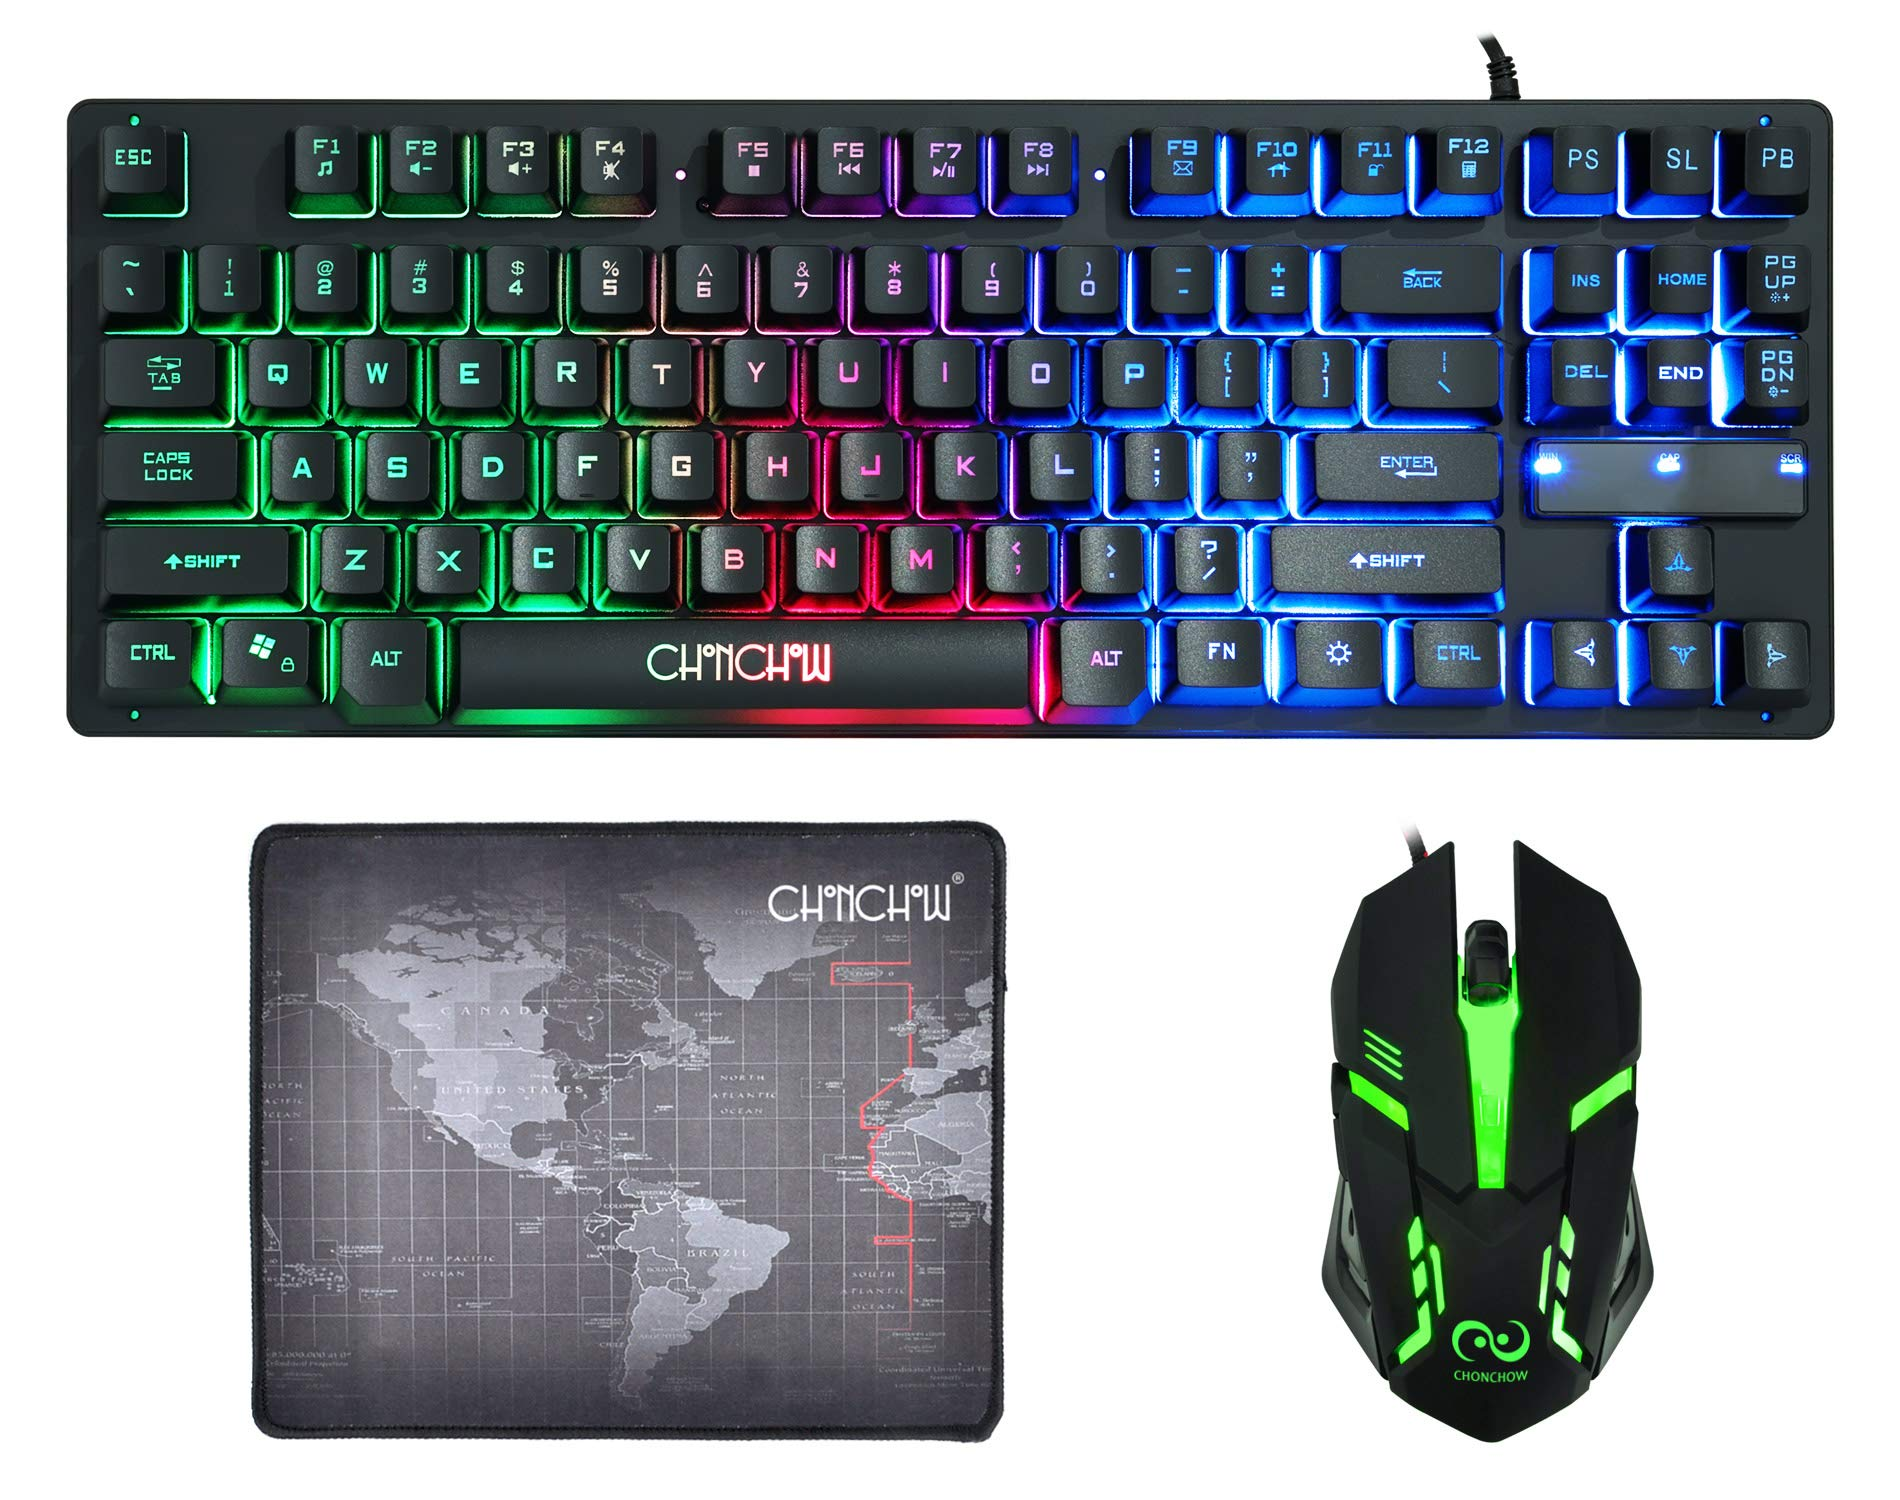 CHONCHOW Rainbow LED Backlit Mechanical Gaming Keyboard and Mouse Combo Wired USB Compact 87-Keys Blue Switches Mechanical RGB Gaming Keyboard and Mouse Compatible with Windows PC Gamers Black